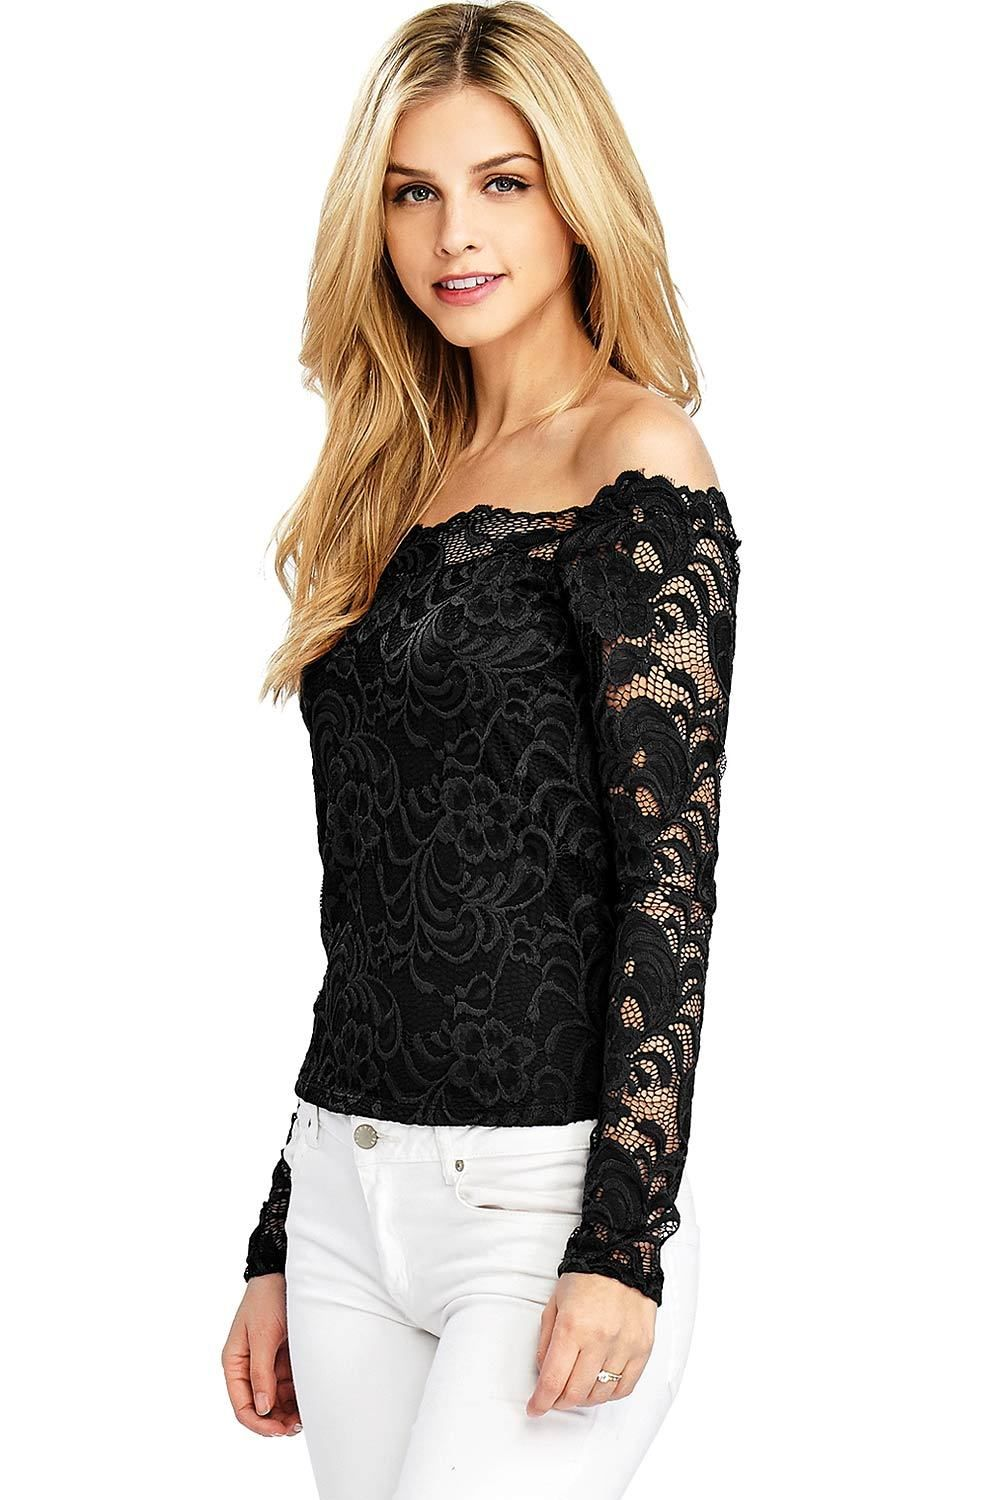 2ef91c05dc08b0 Cropped long sleeve lace top with scalloped off the shoulder neckline.  Fully lined body with sheer lace sleeves. Looks great with jeans or dressed  up with ...